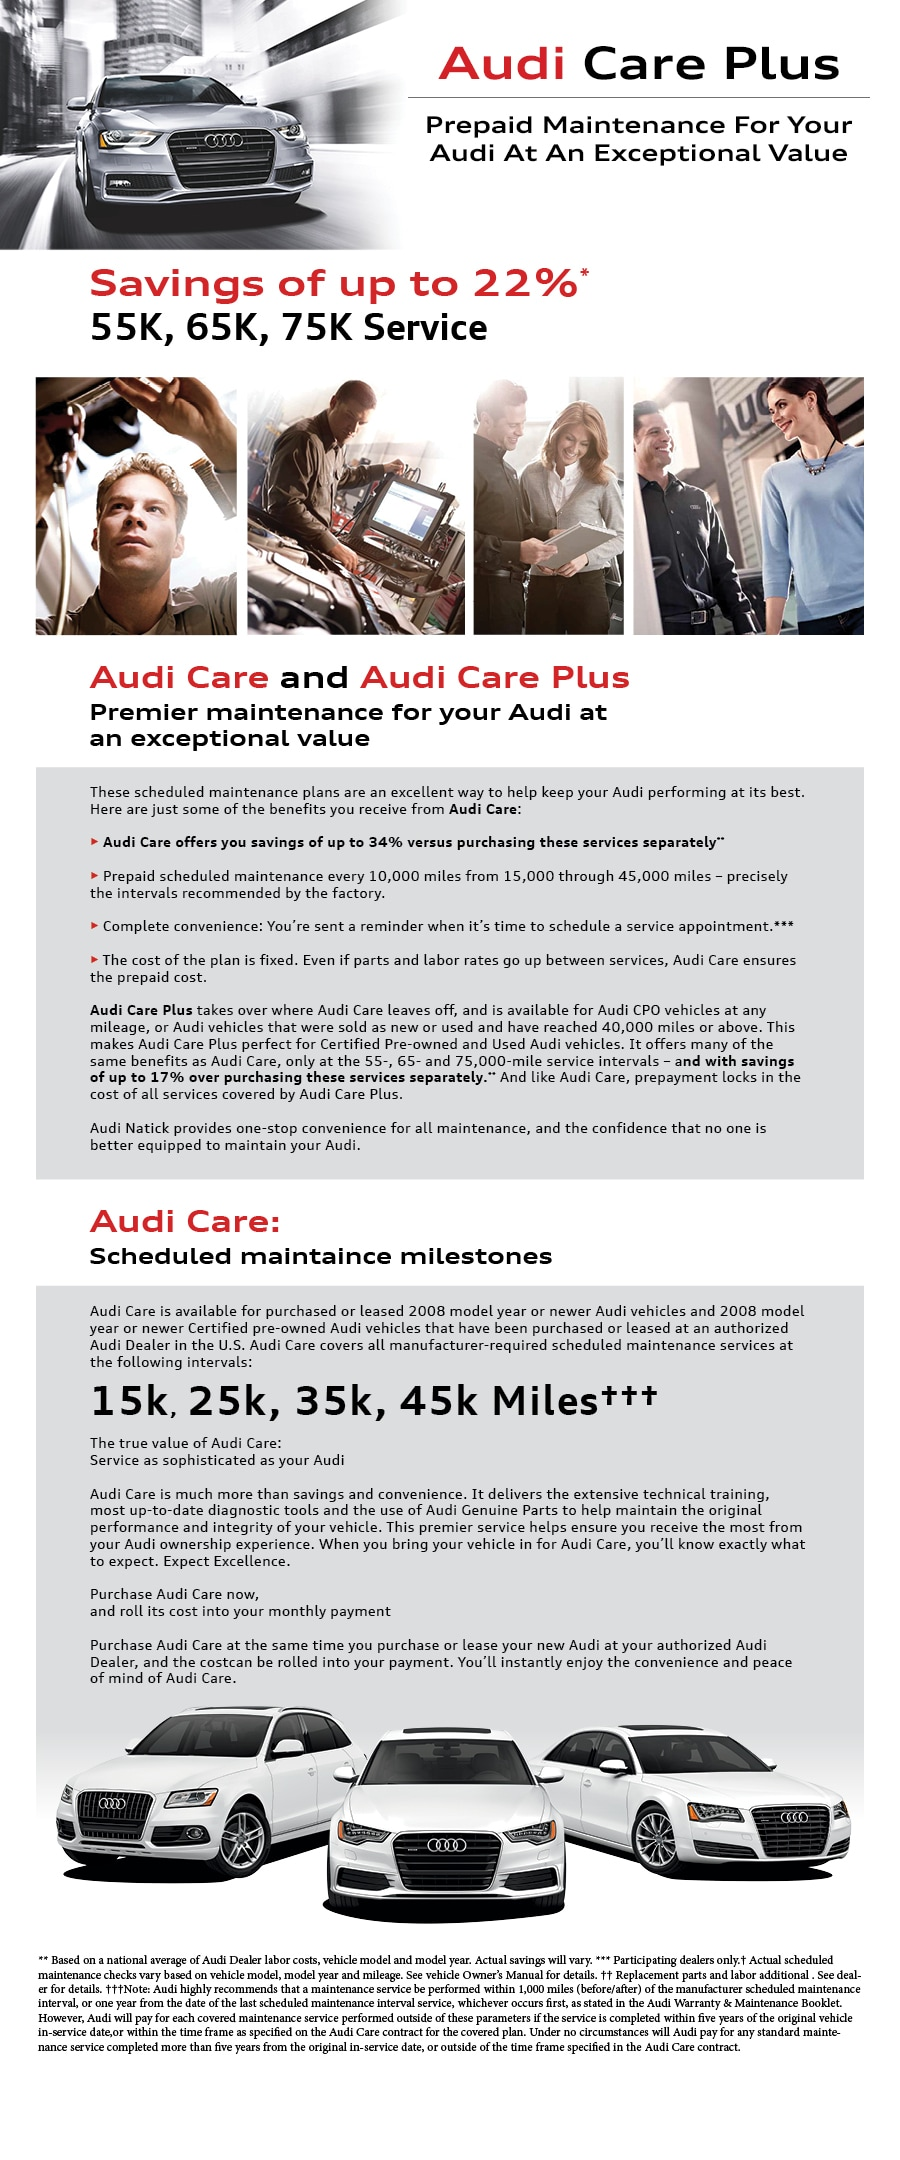 bernardi audi natick offers audi care plus to help you save up to